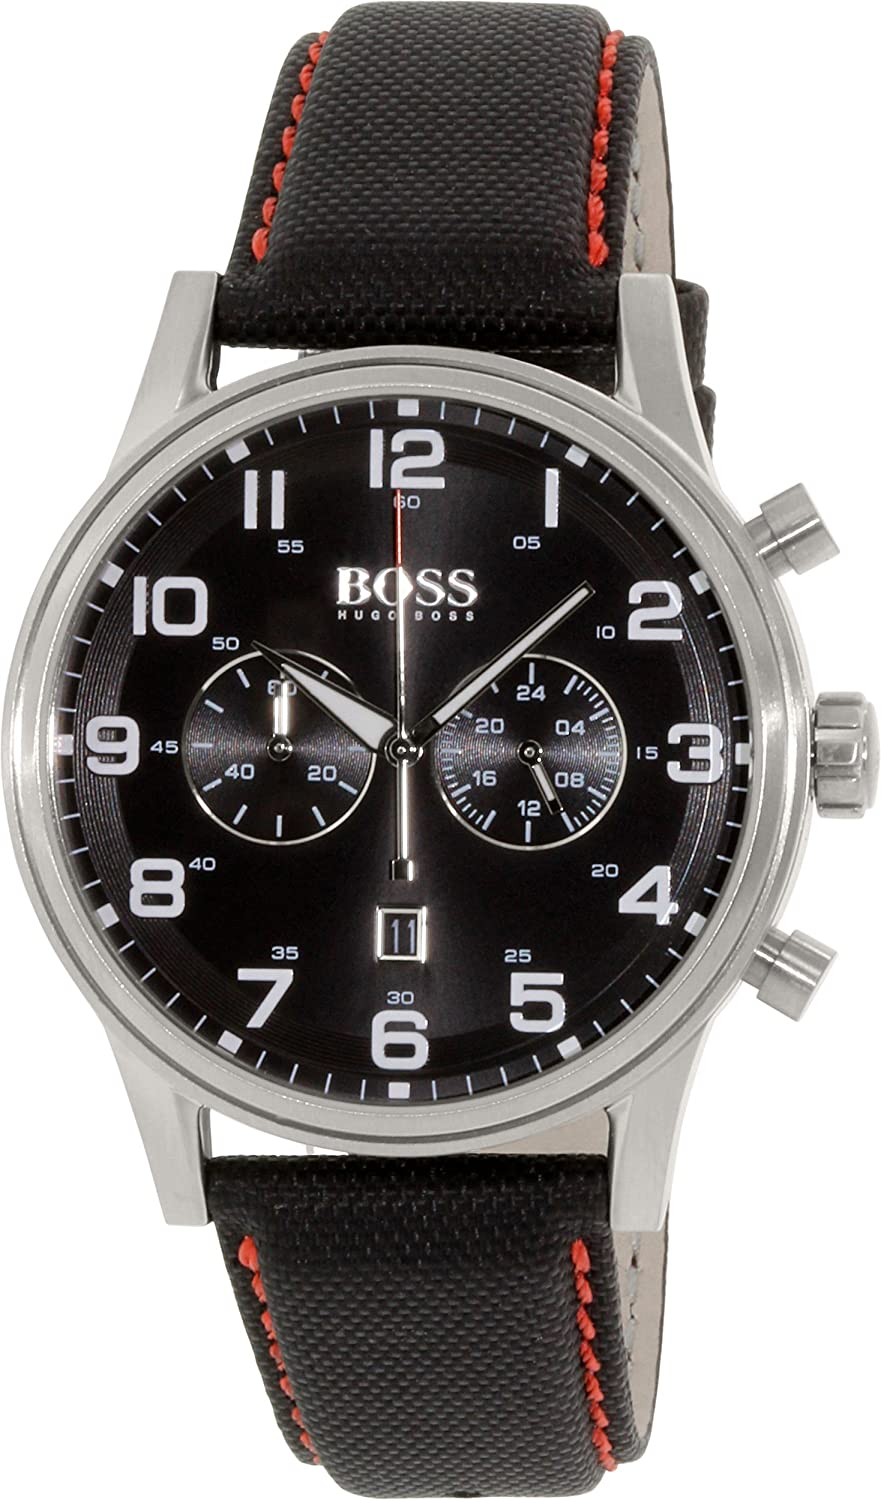 Hugo Boss Herren Men's Chronograph Analog Dress Quartz Reloj (Importiert)1512919